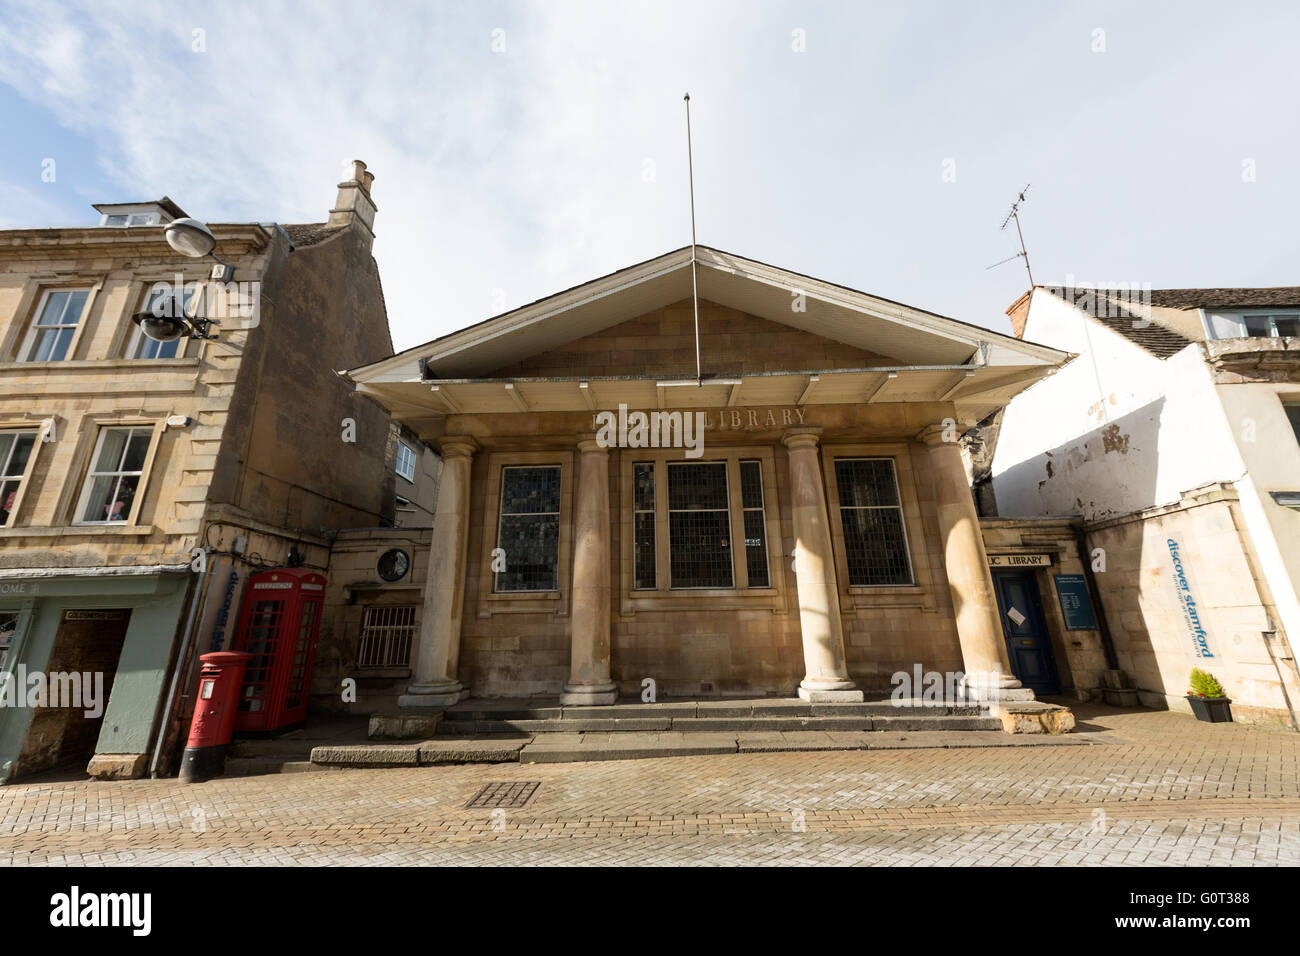 stamford-public-library-lincolnshire-eng